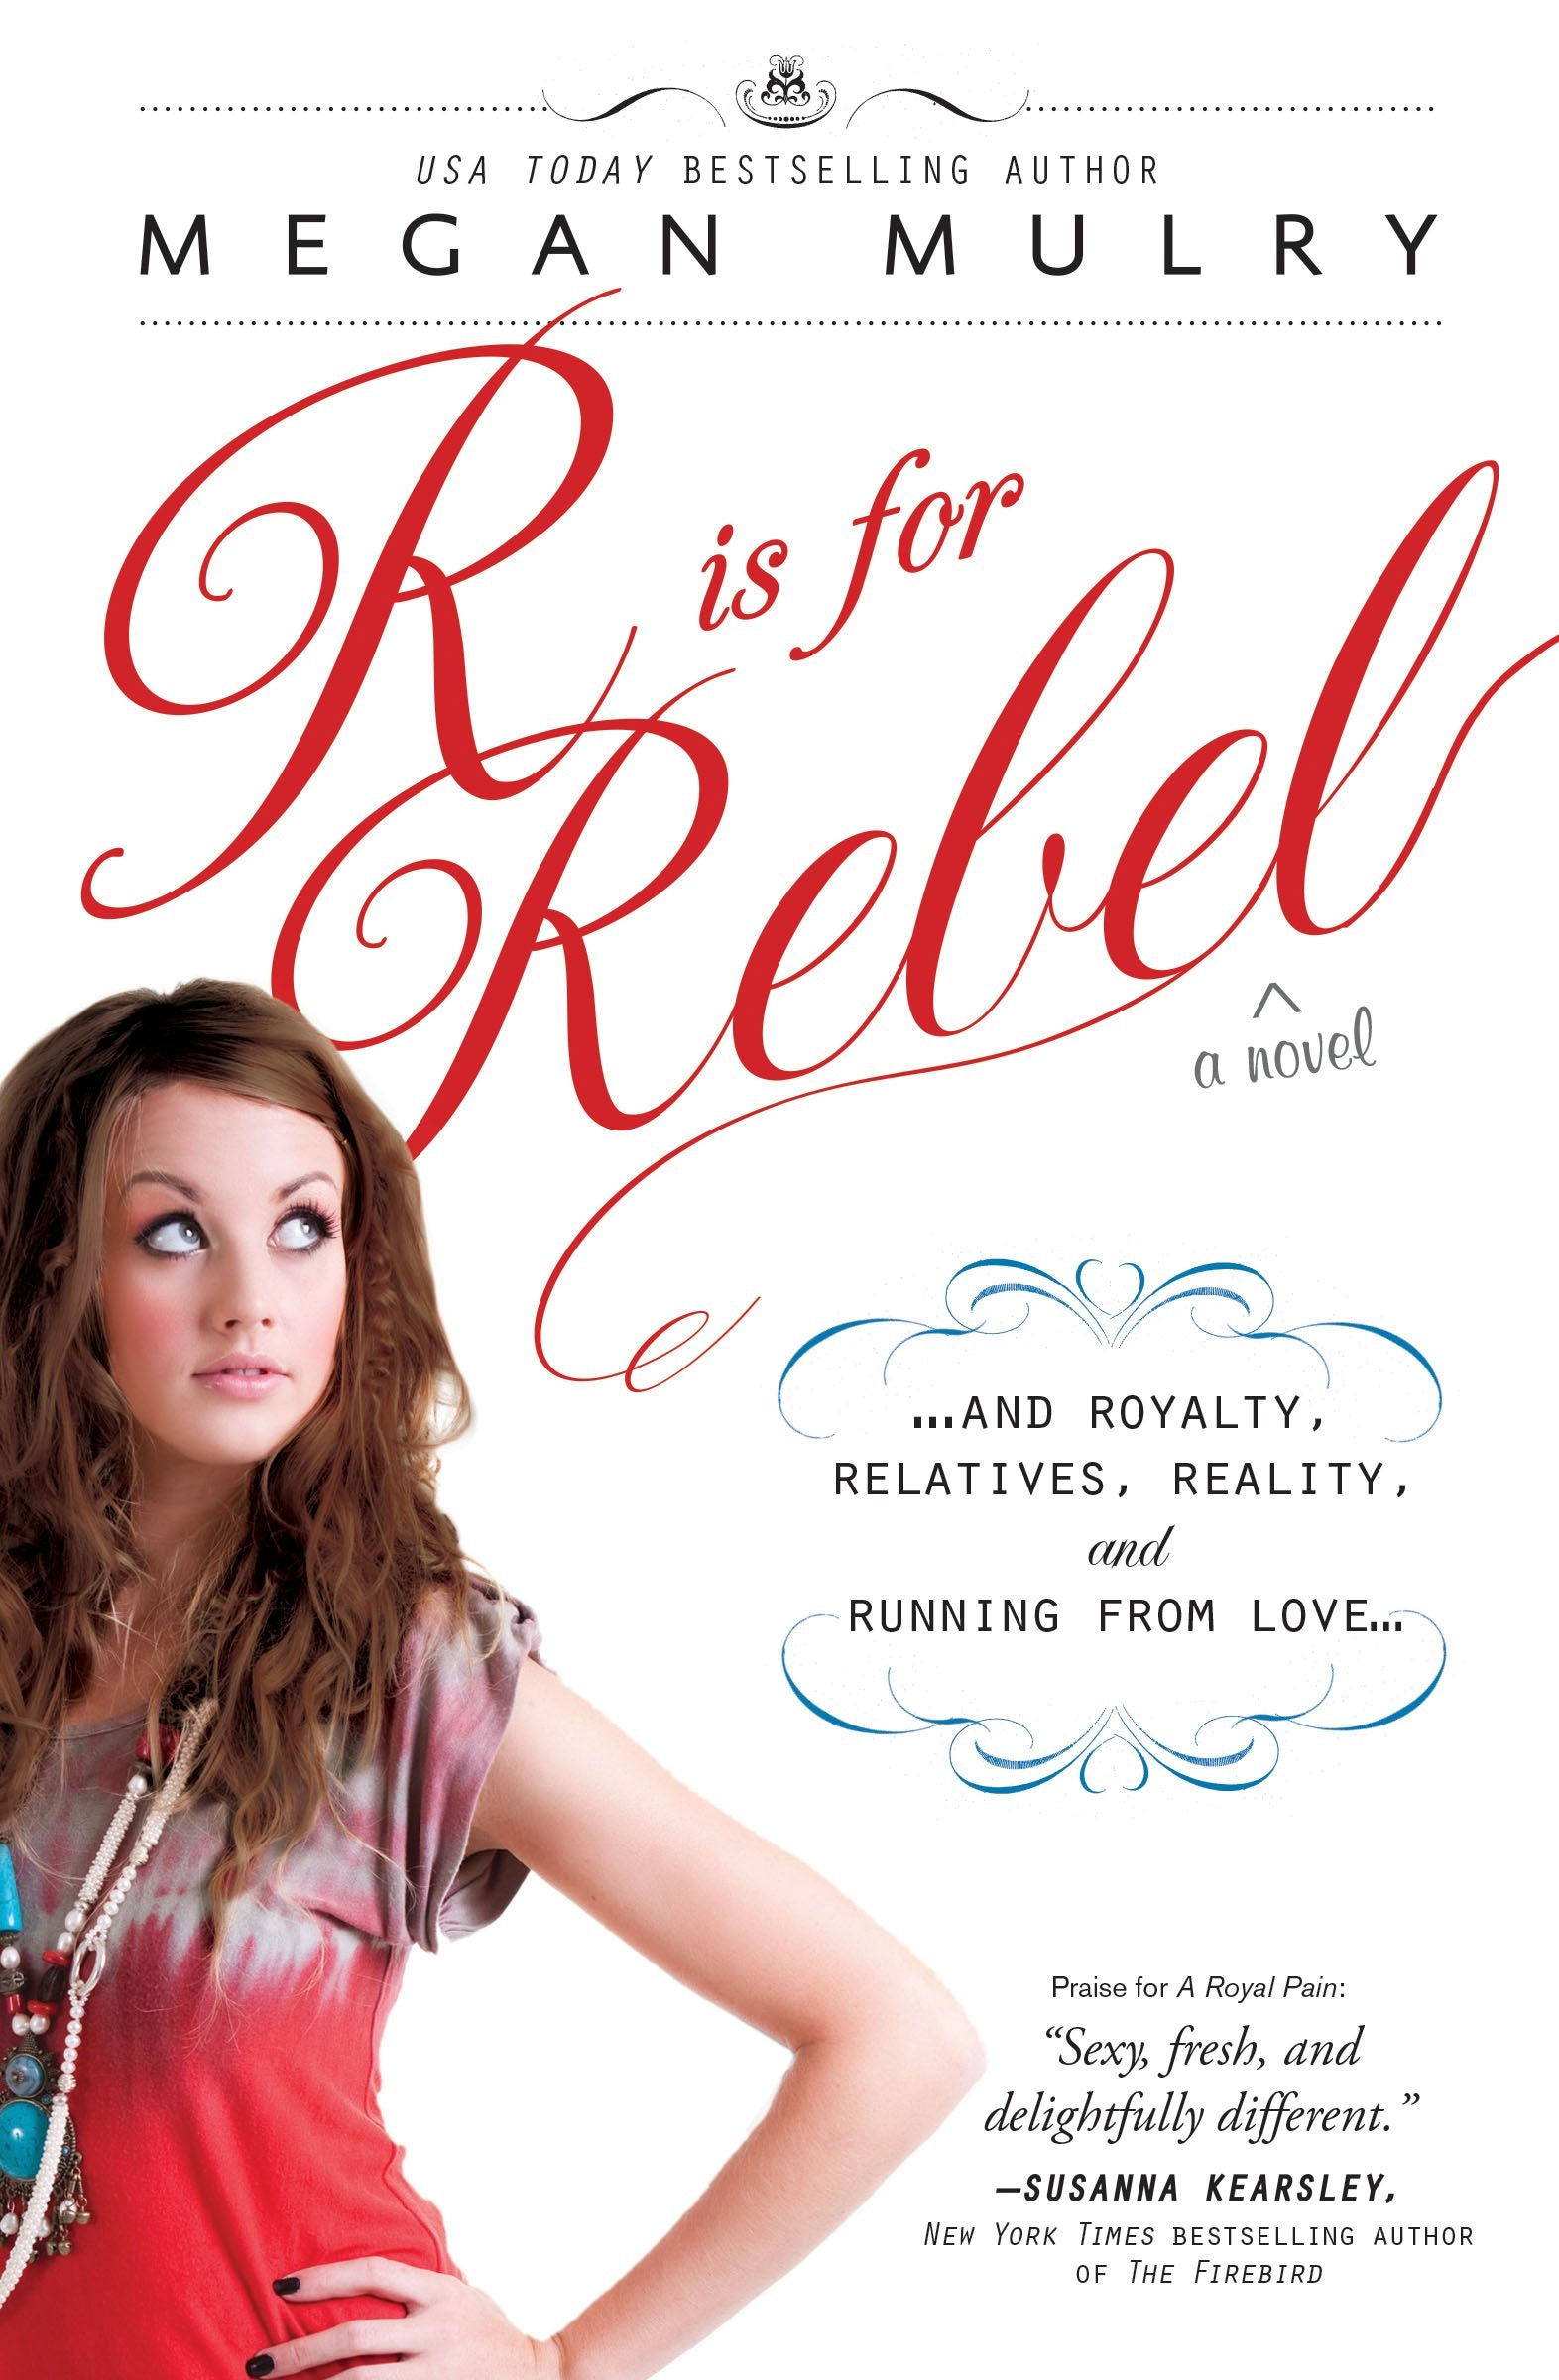 13 Romance Novels That Should Be On Every Woman's Bucket List